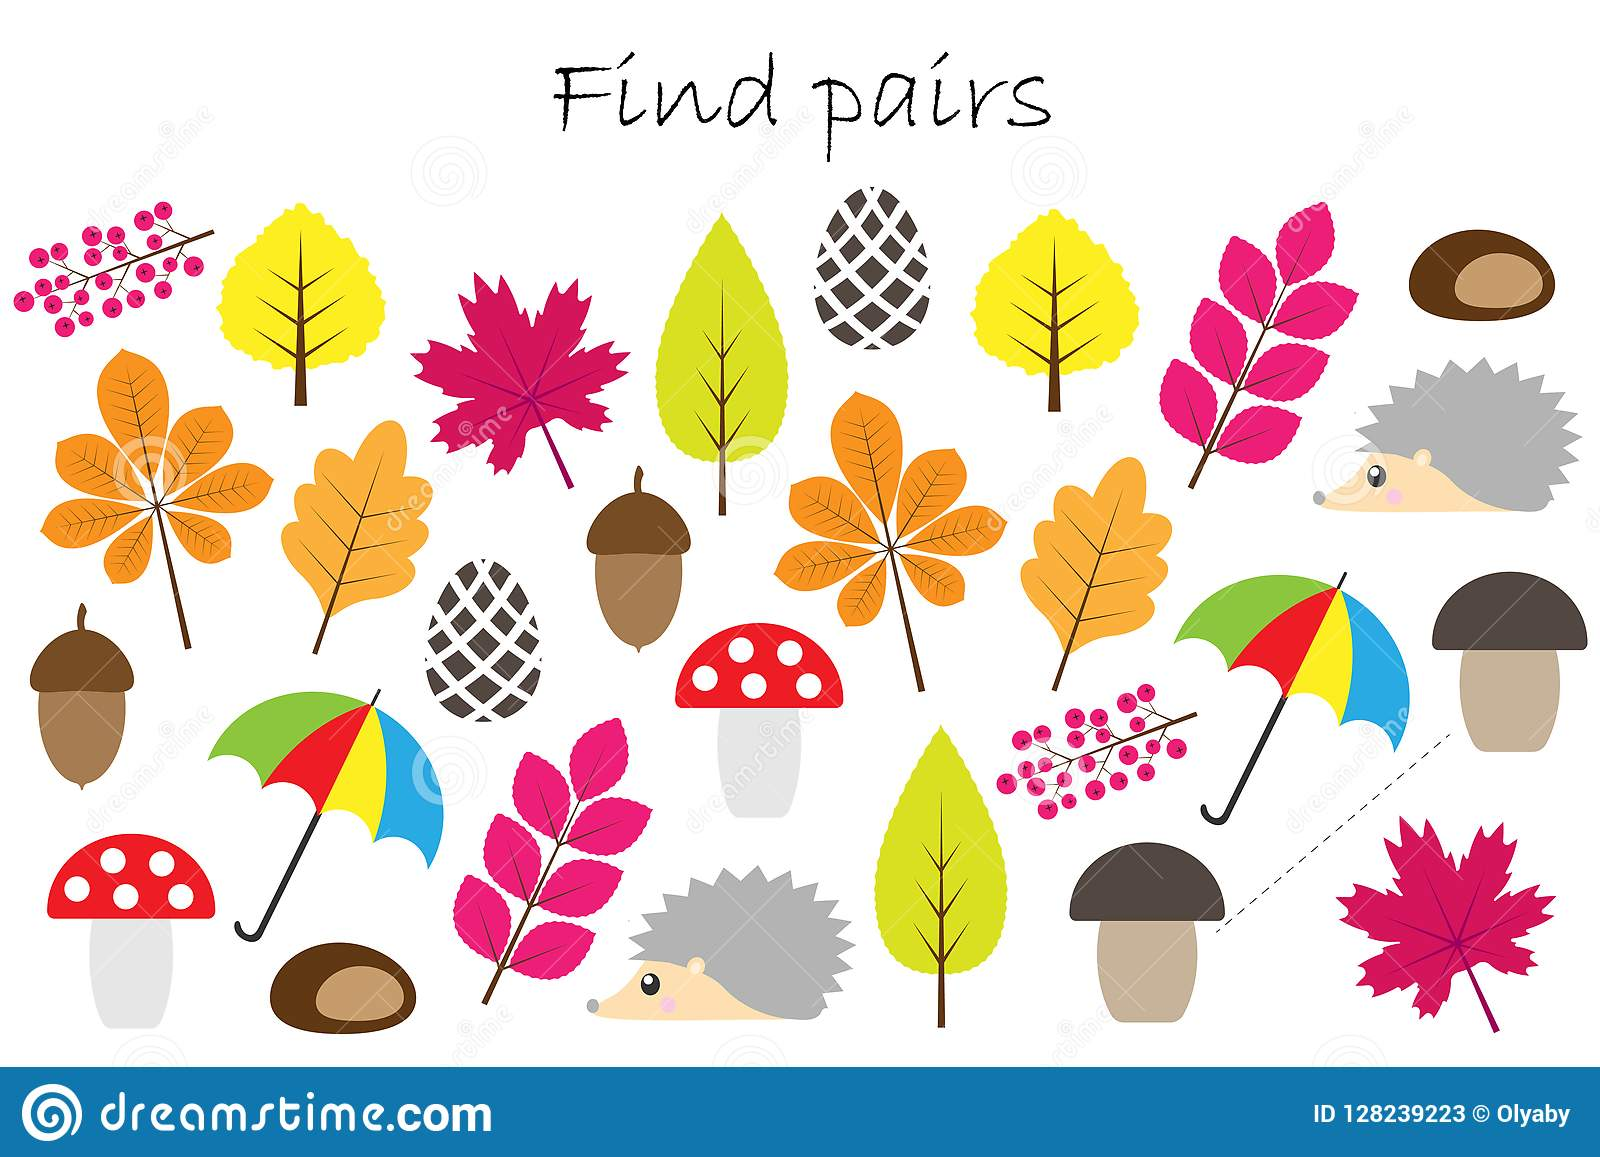 find pairs of identical pictures fun education game with autumn